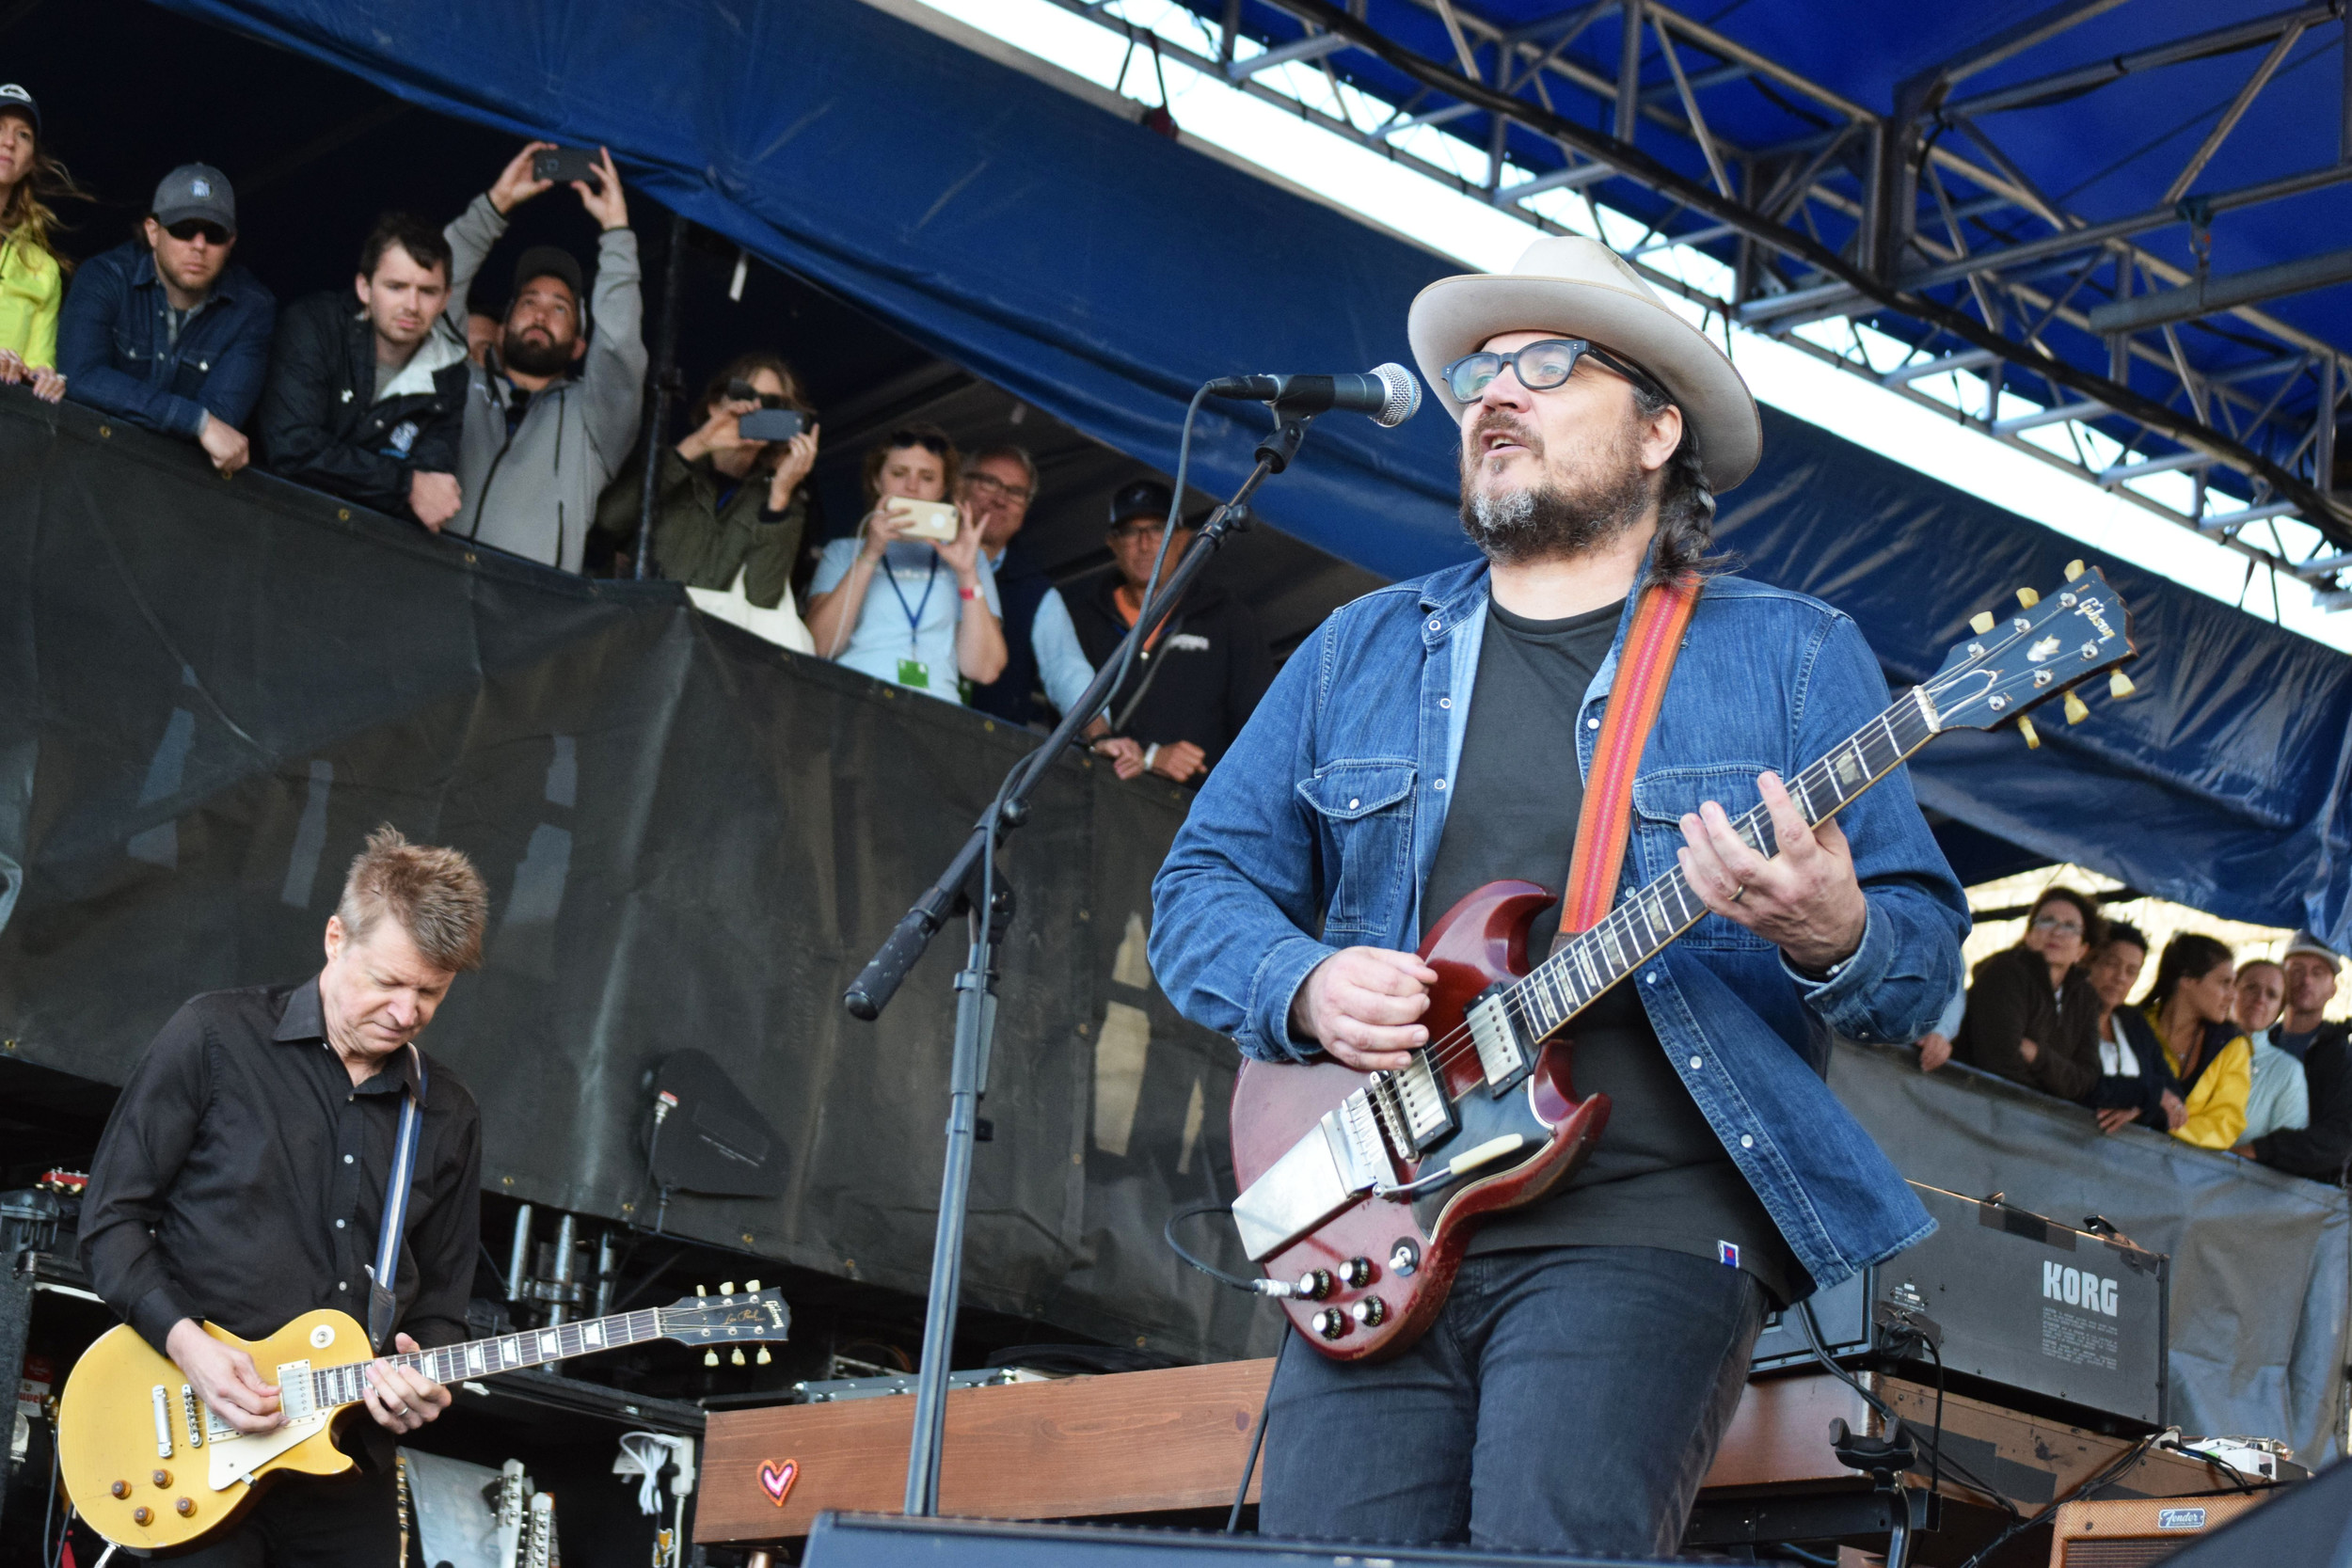 Guitarists Nels Cline, left, and Jeff Tweedy of the band Wilco perform on the Fort Stage of the Newport Folk Festival on Saturday, July 29.